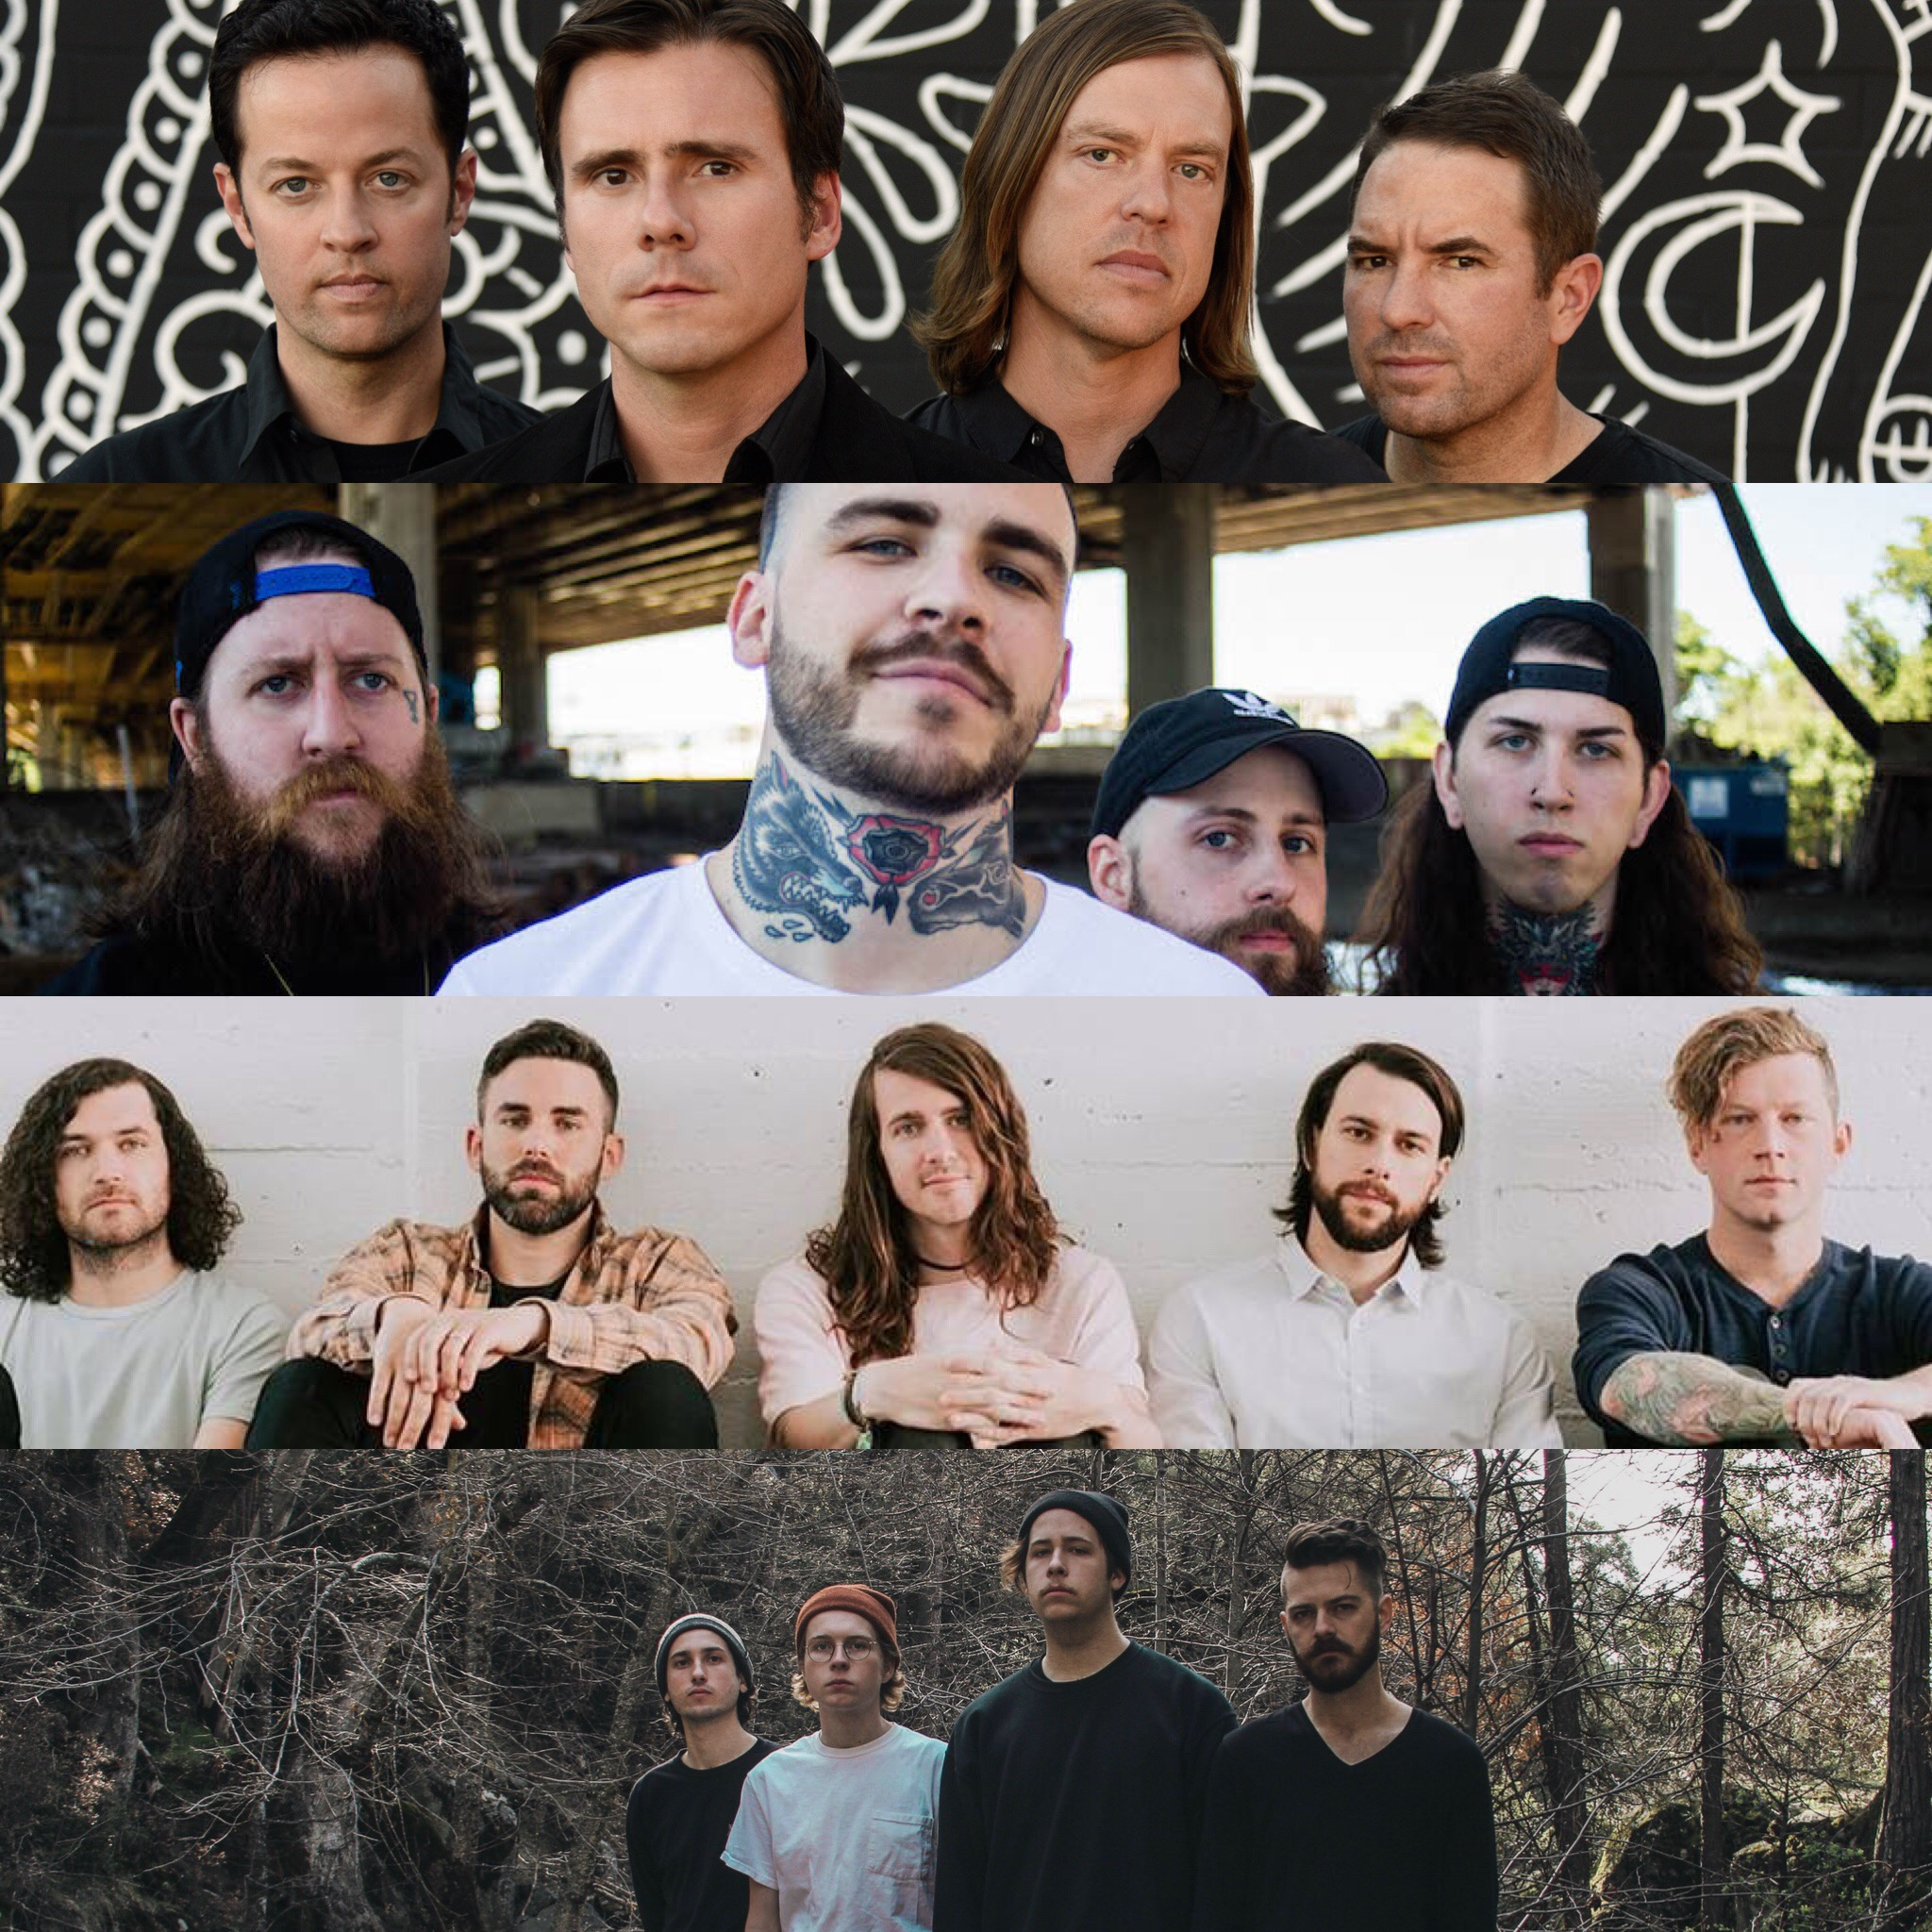 FROM TOP TO BOTTOM: JIMMY EAT WORLD, GREAT AMERICAN GHOST, MAYDAY PARADE, ANDY'S ROOM